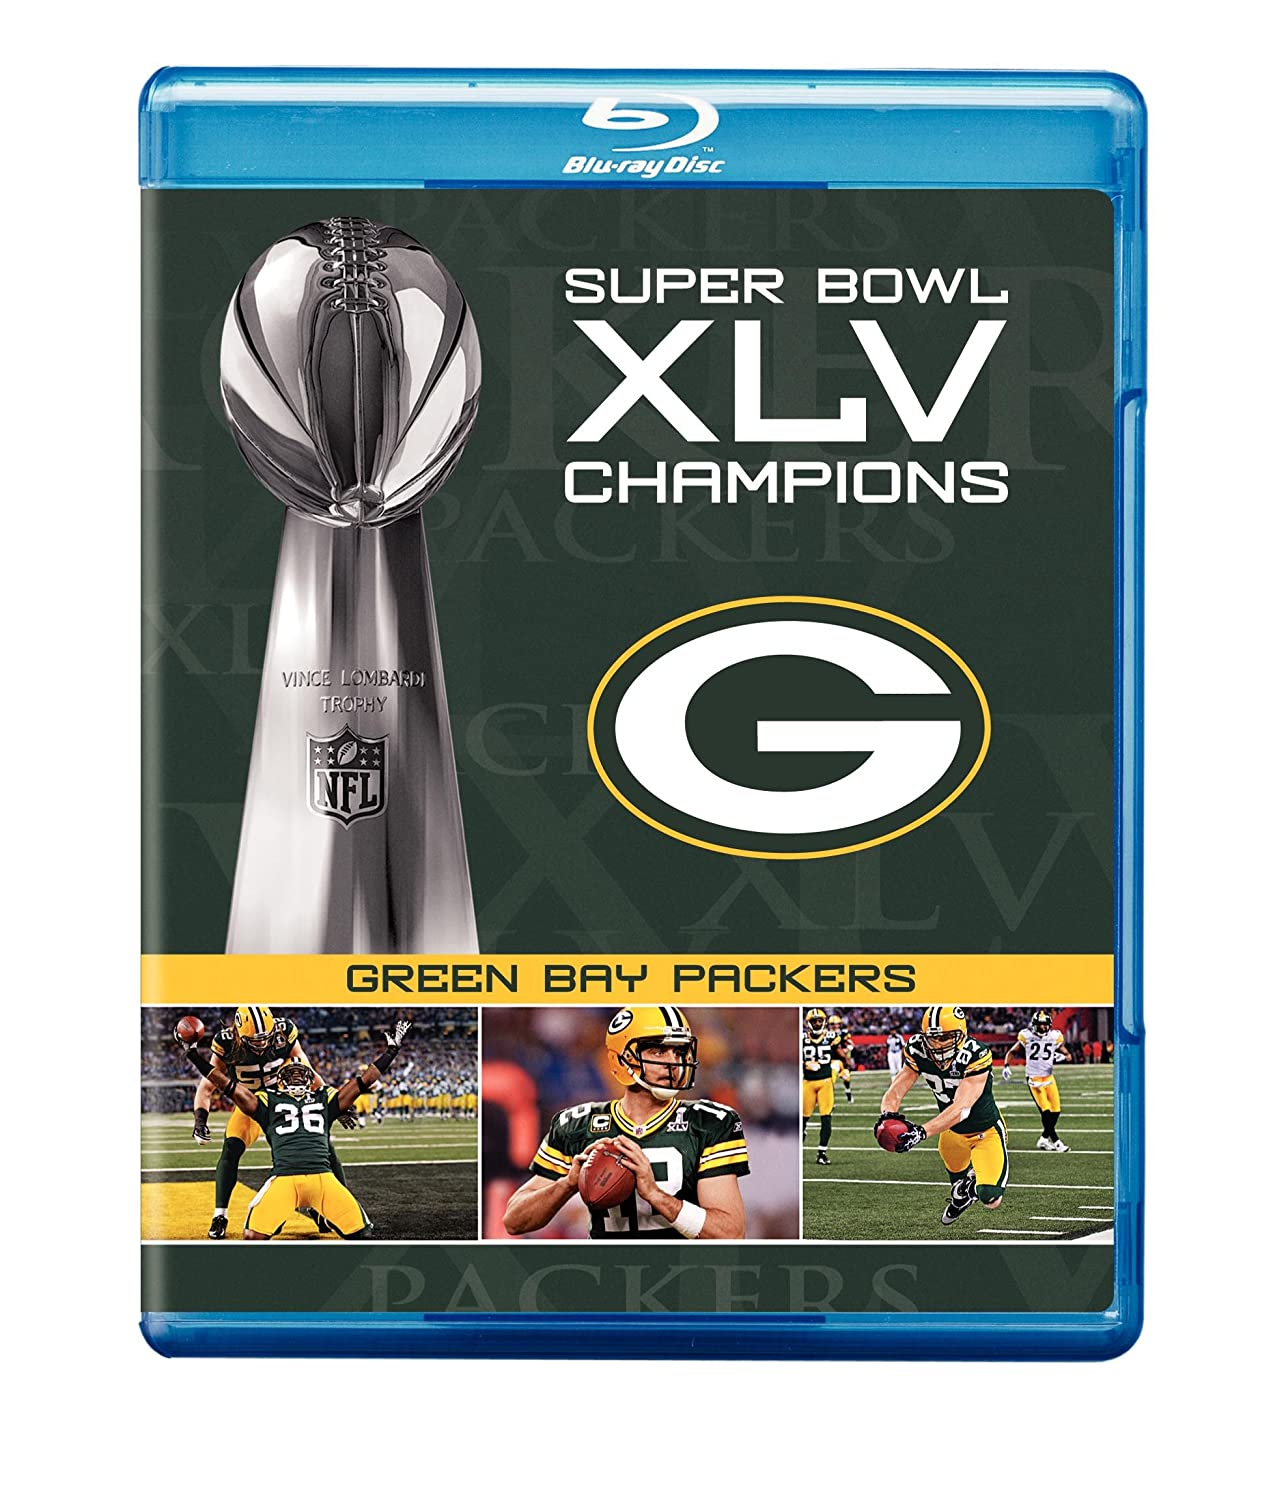 NFL Super Large special price Gorgeous Bowl XLV Champions: Bay Packers Blu-ray Green